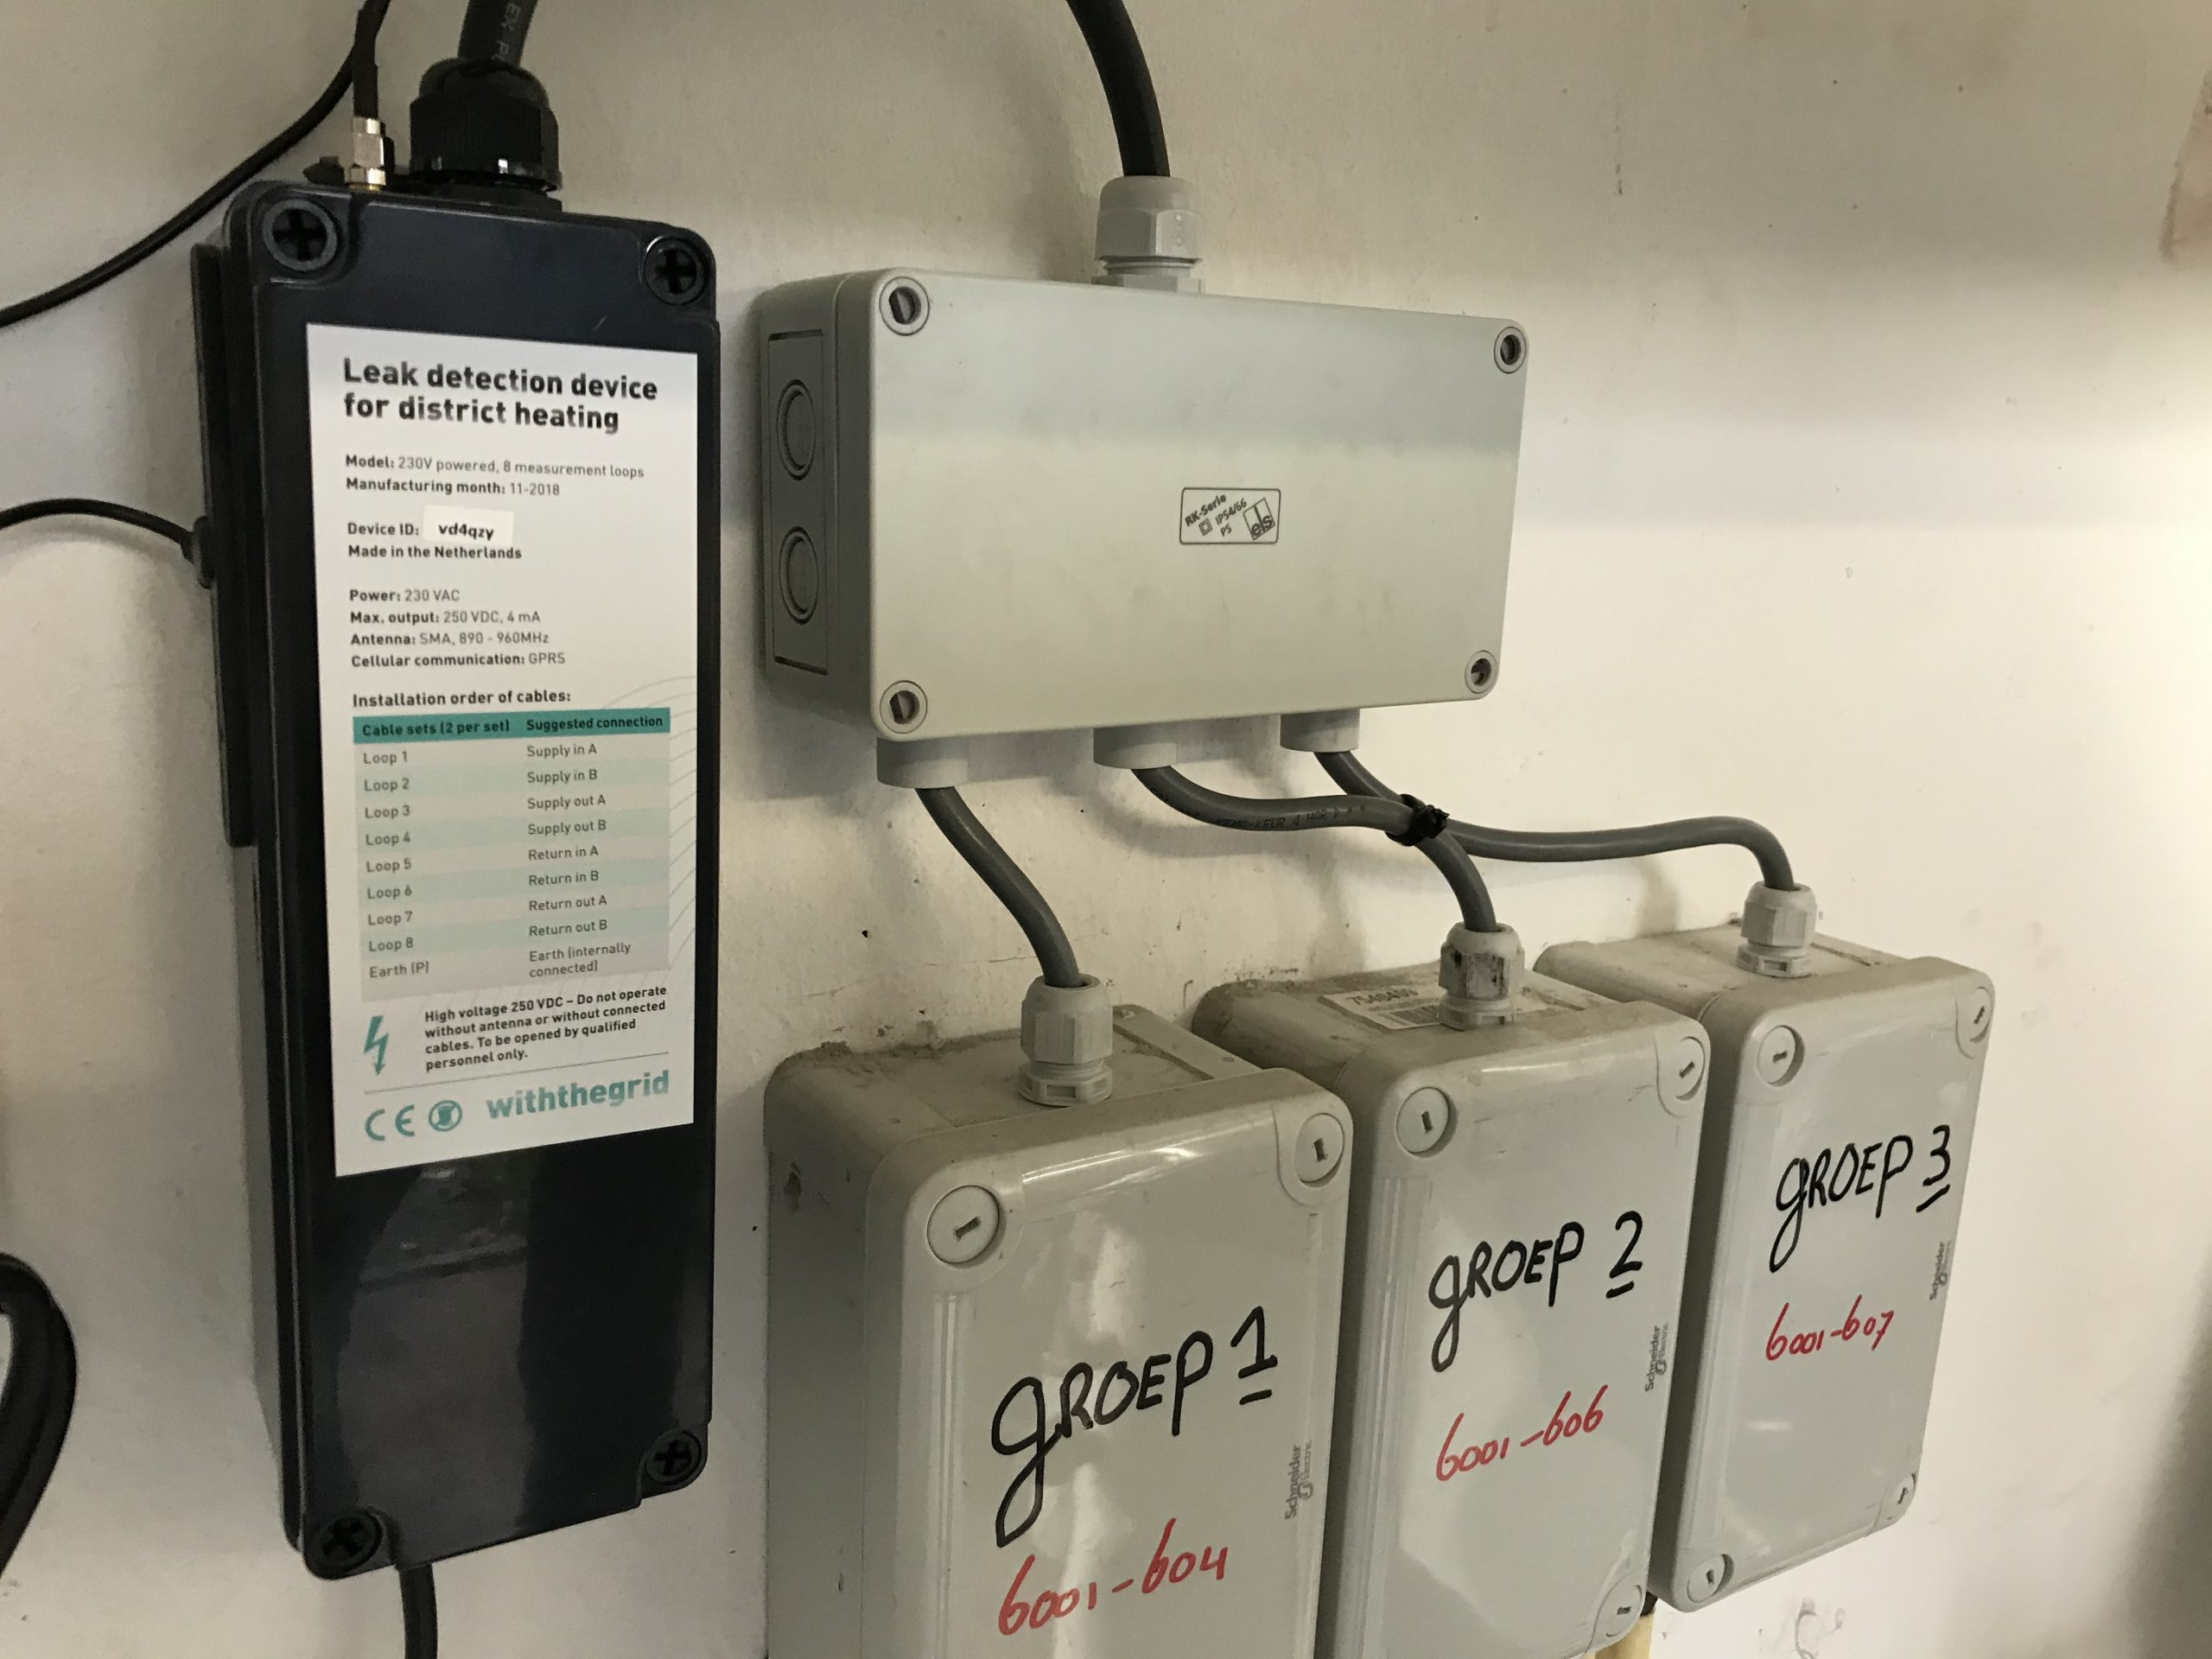 Remote monitoring device for district heating